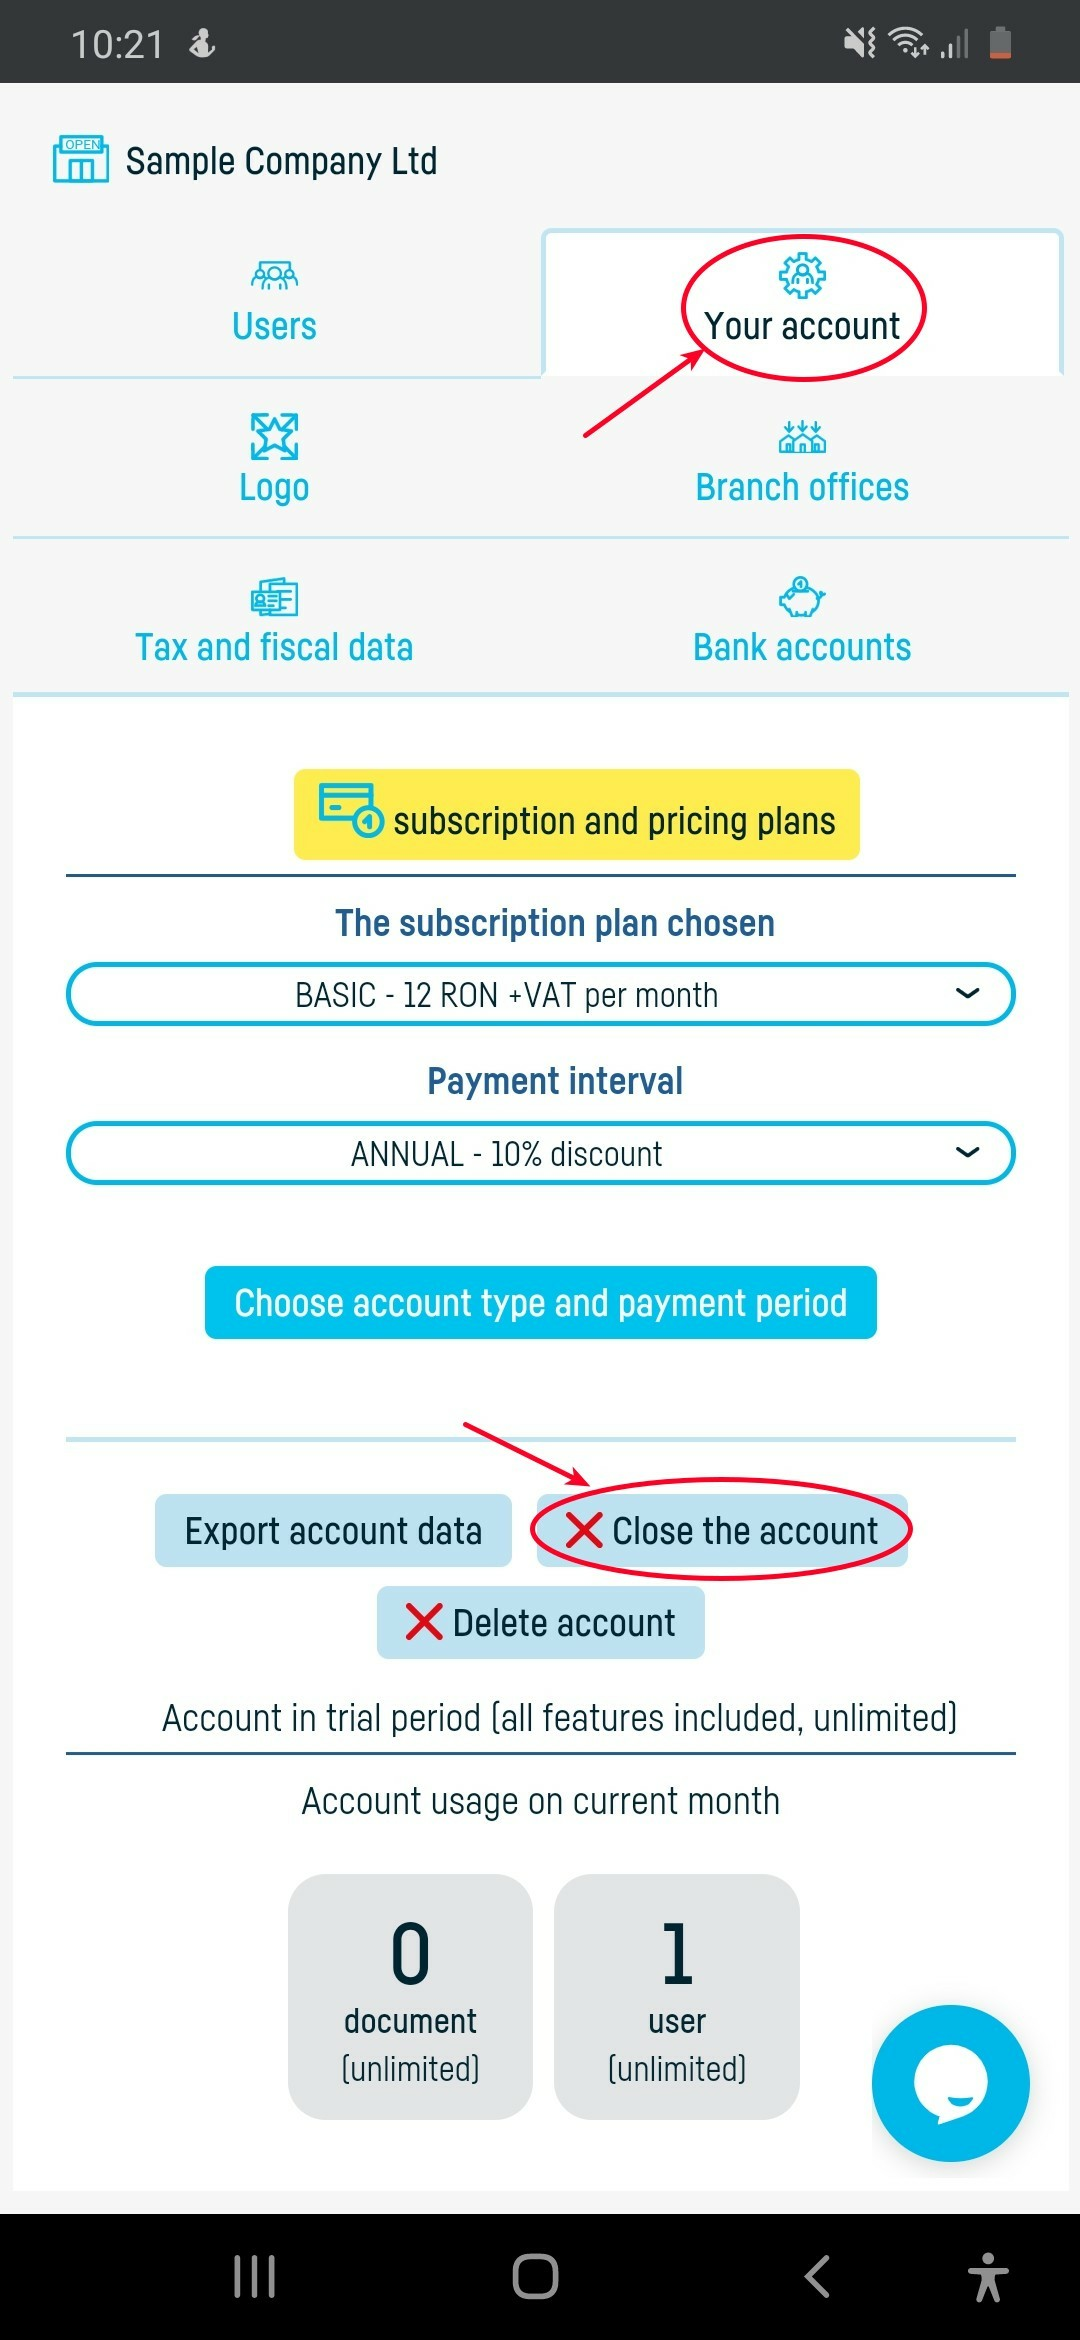 How do I close my account at online-billing-service? - step 2